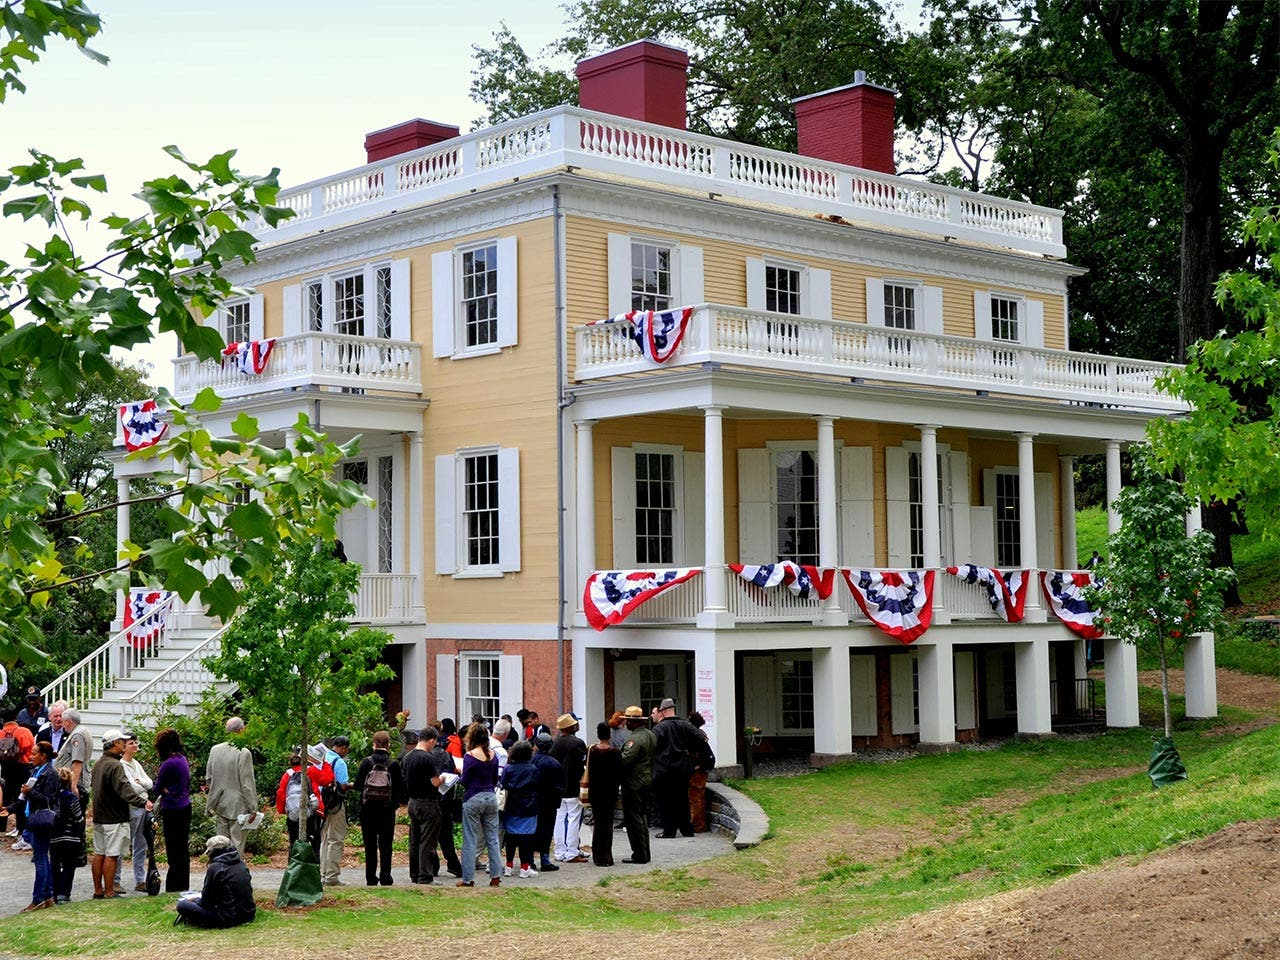 House of Alexander Hamilton | LEE SNIDER PHOTO IMAGES/Shutterstock.com